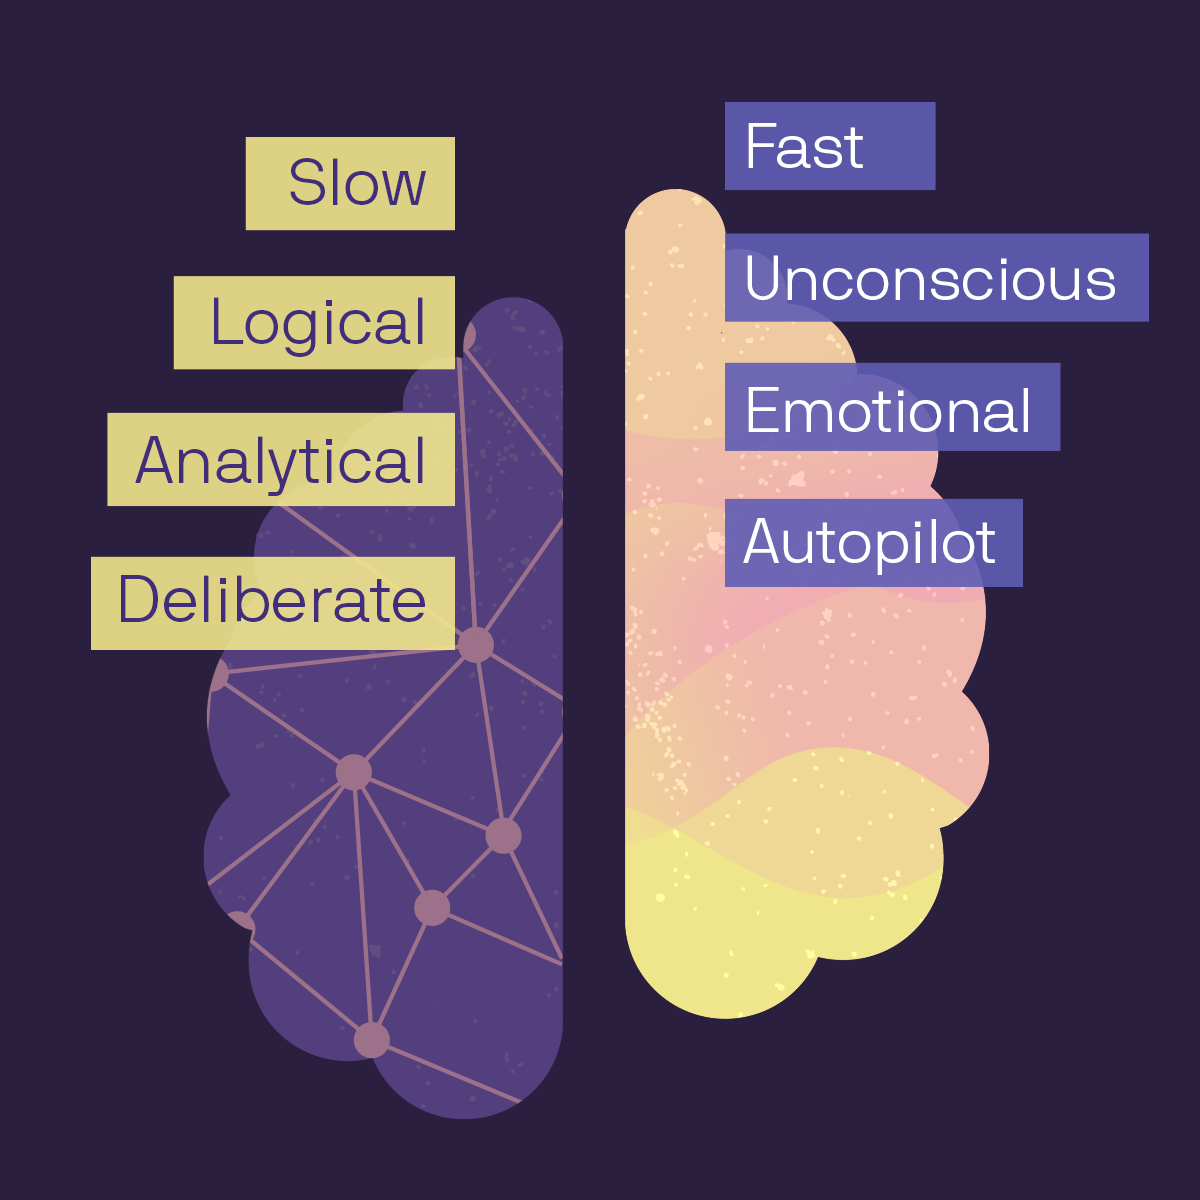 An image showing the emotional and logical halves of the brain